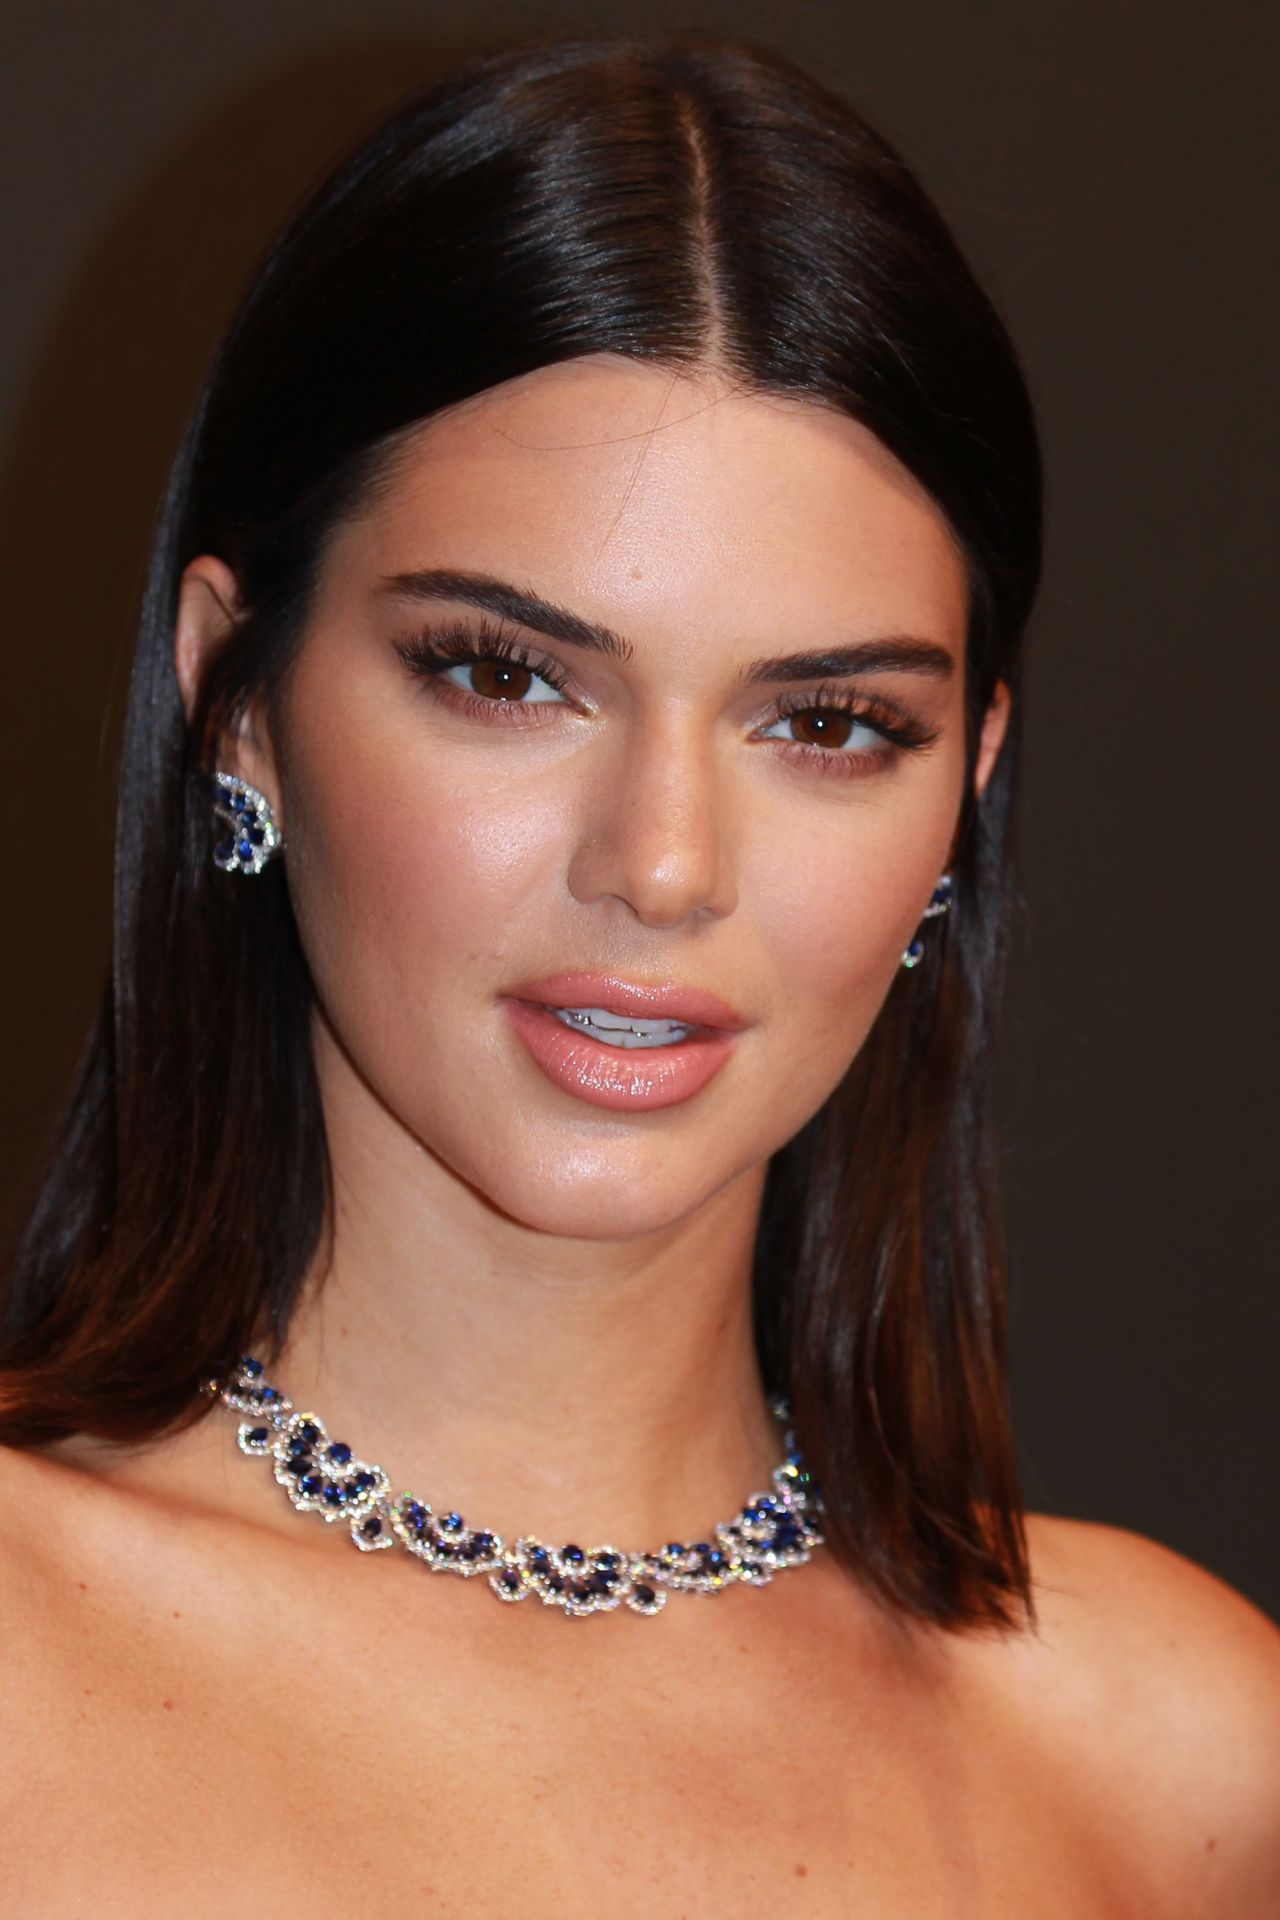 kendall jenner - photo #6